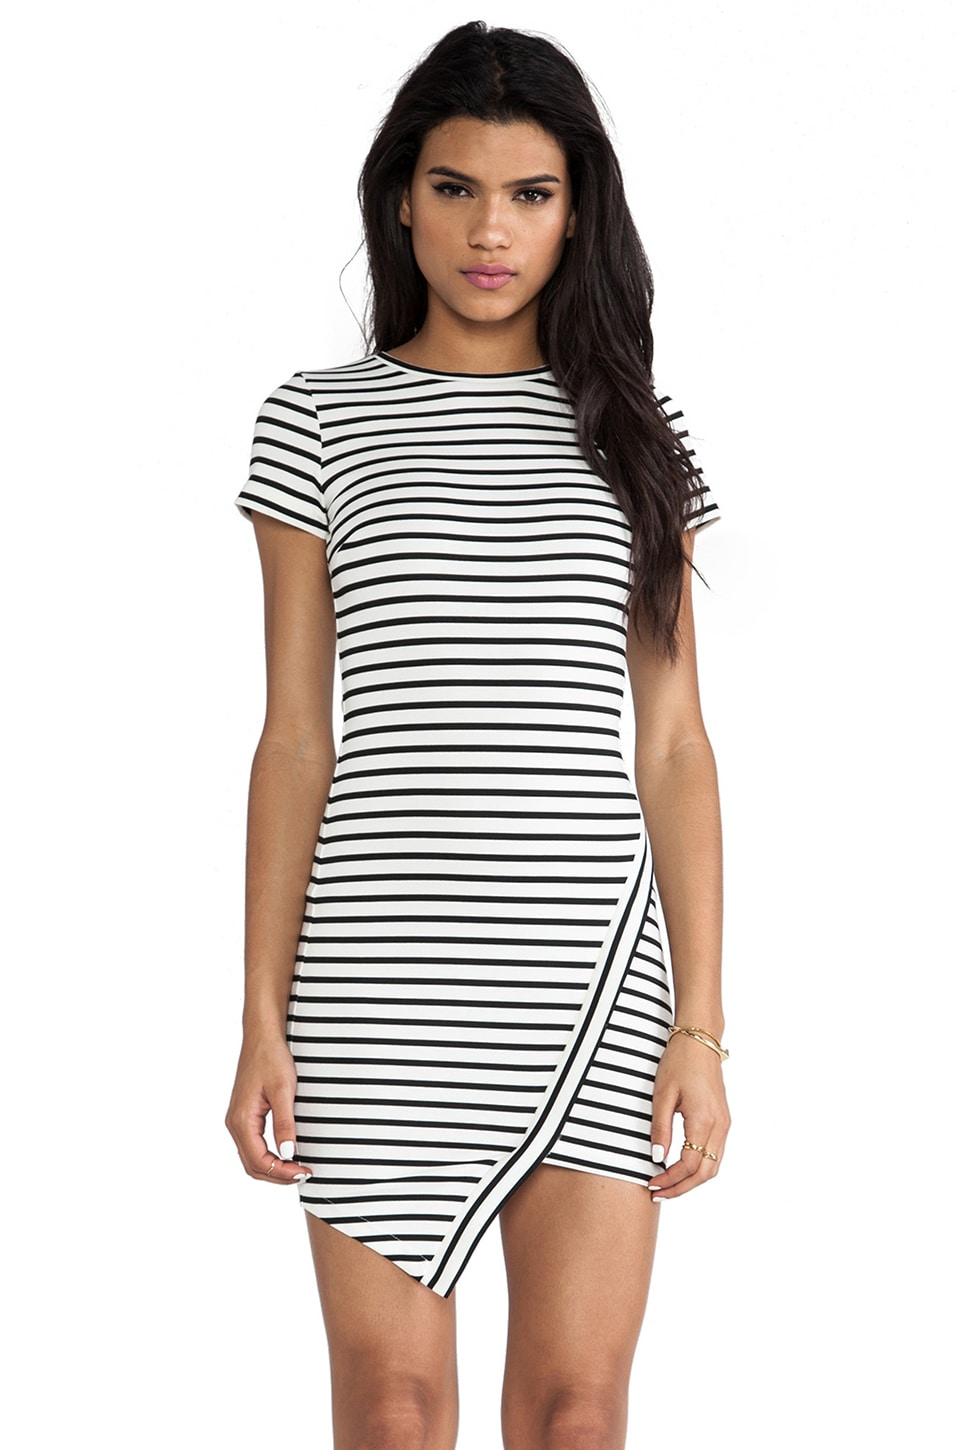 BEC&BRIDGE Elements Sleeveless Dress in White Stripe